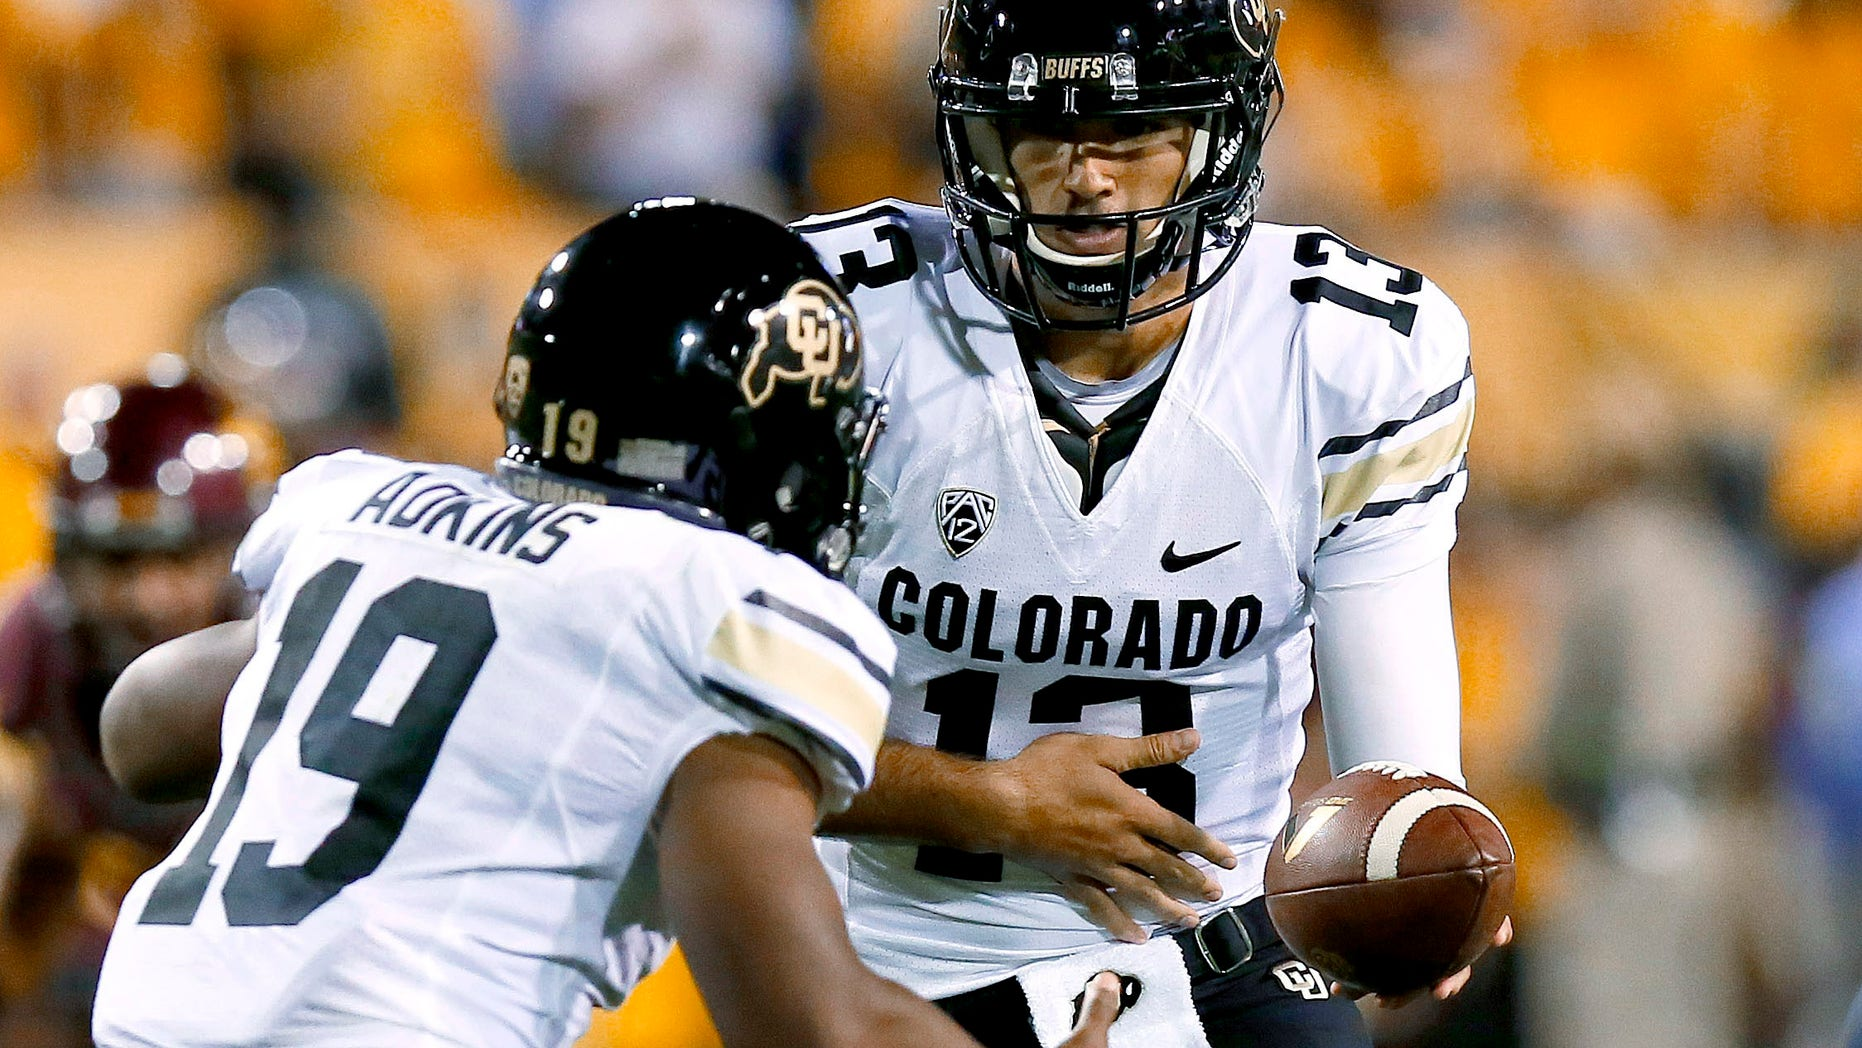 FILE - In this Oct. 12, 2013, file photo, Colorado's quarterback Sefo Liufau (13) hands the ball off to Michael Adkins II (19) during the first half of an NCAA college football game against Arizona State in Tempe, Ariz.  Liufau, a freshman, gets his first start Saturday when Colorado hosts lower-tier but unbeaten Charleston Southern, a fill-in for their flooded-out game against Fresno State last month. (AP Photo/Ross D. Franklin, File)